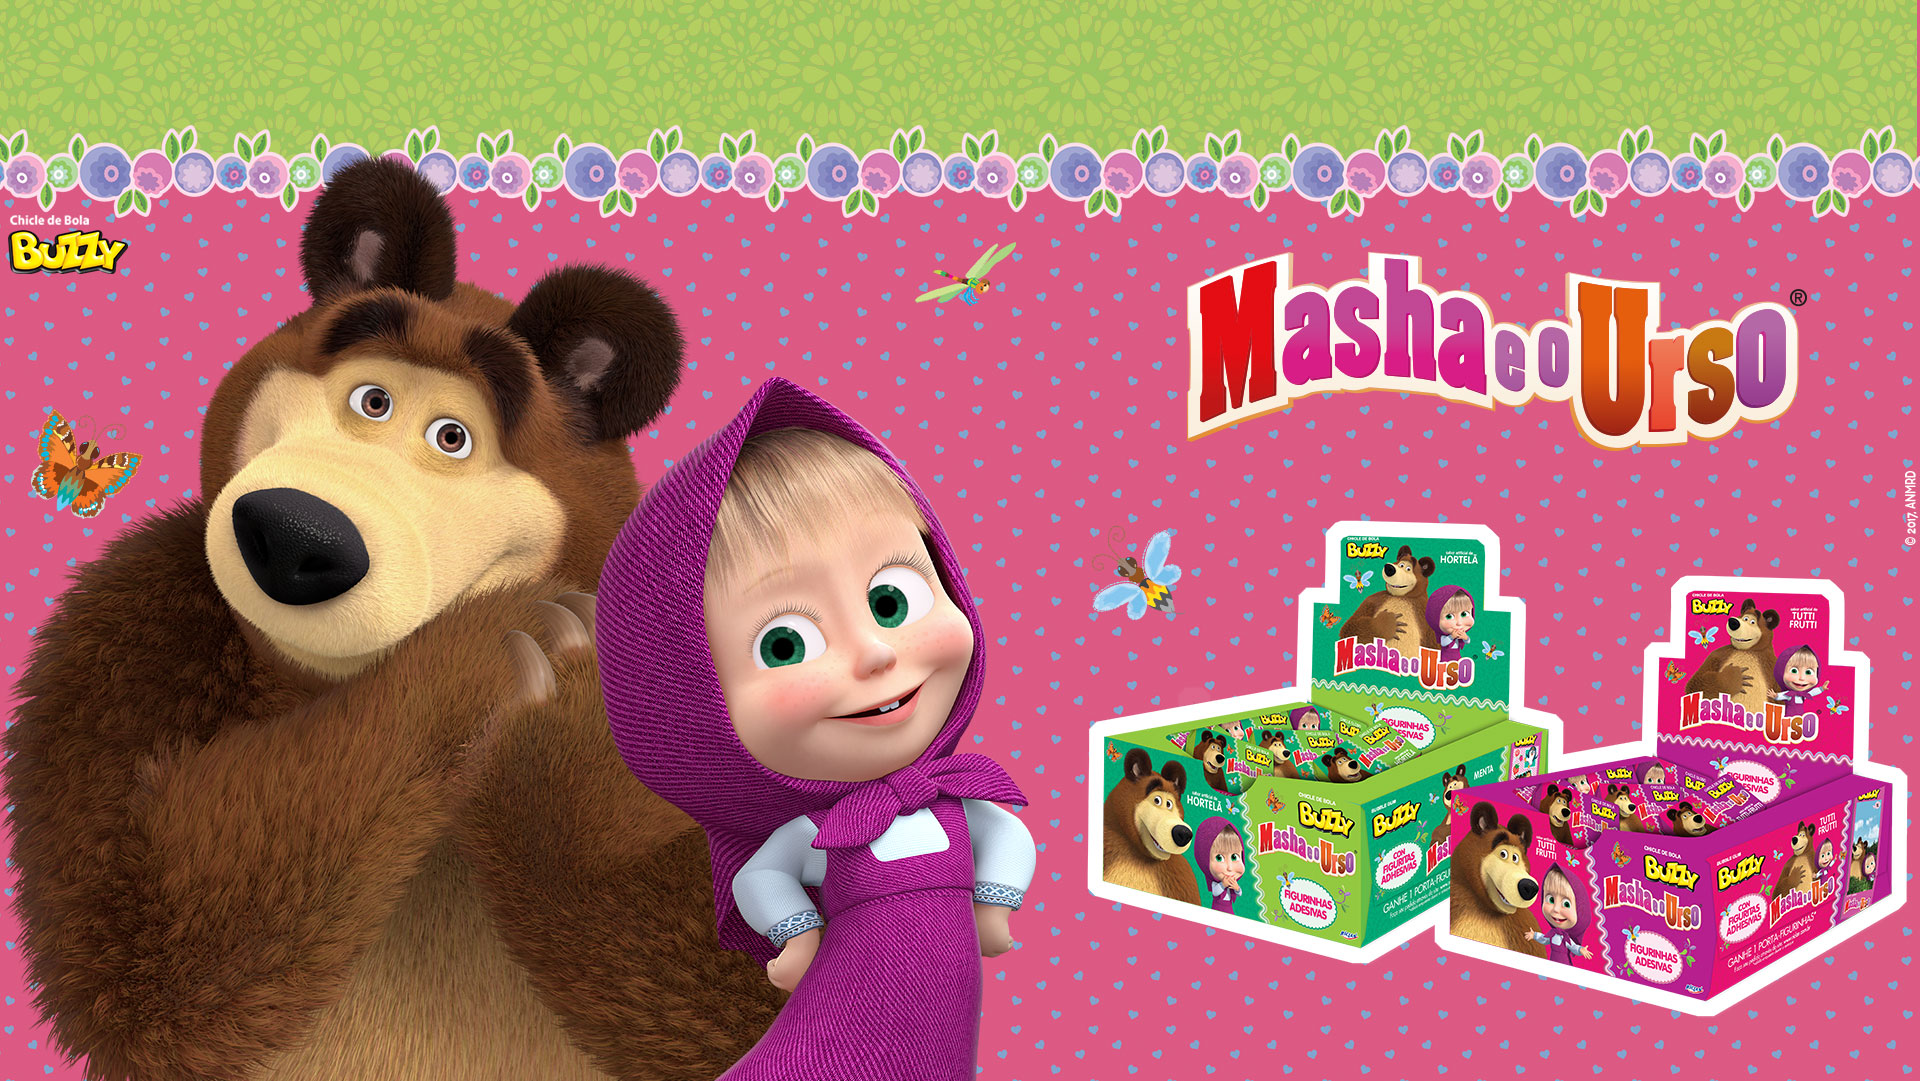 Buzzy Masha and the bear